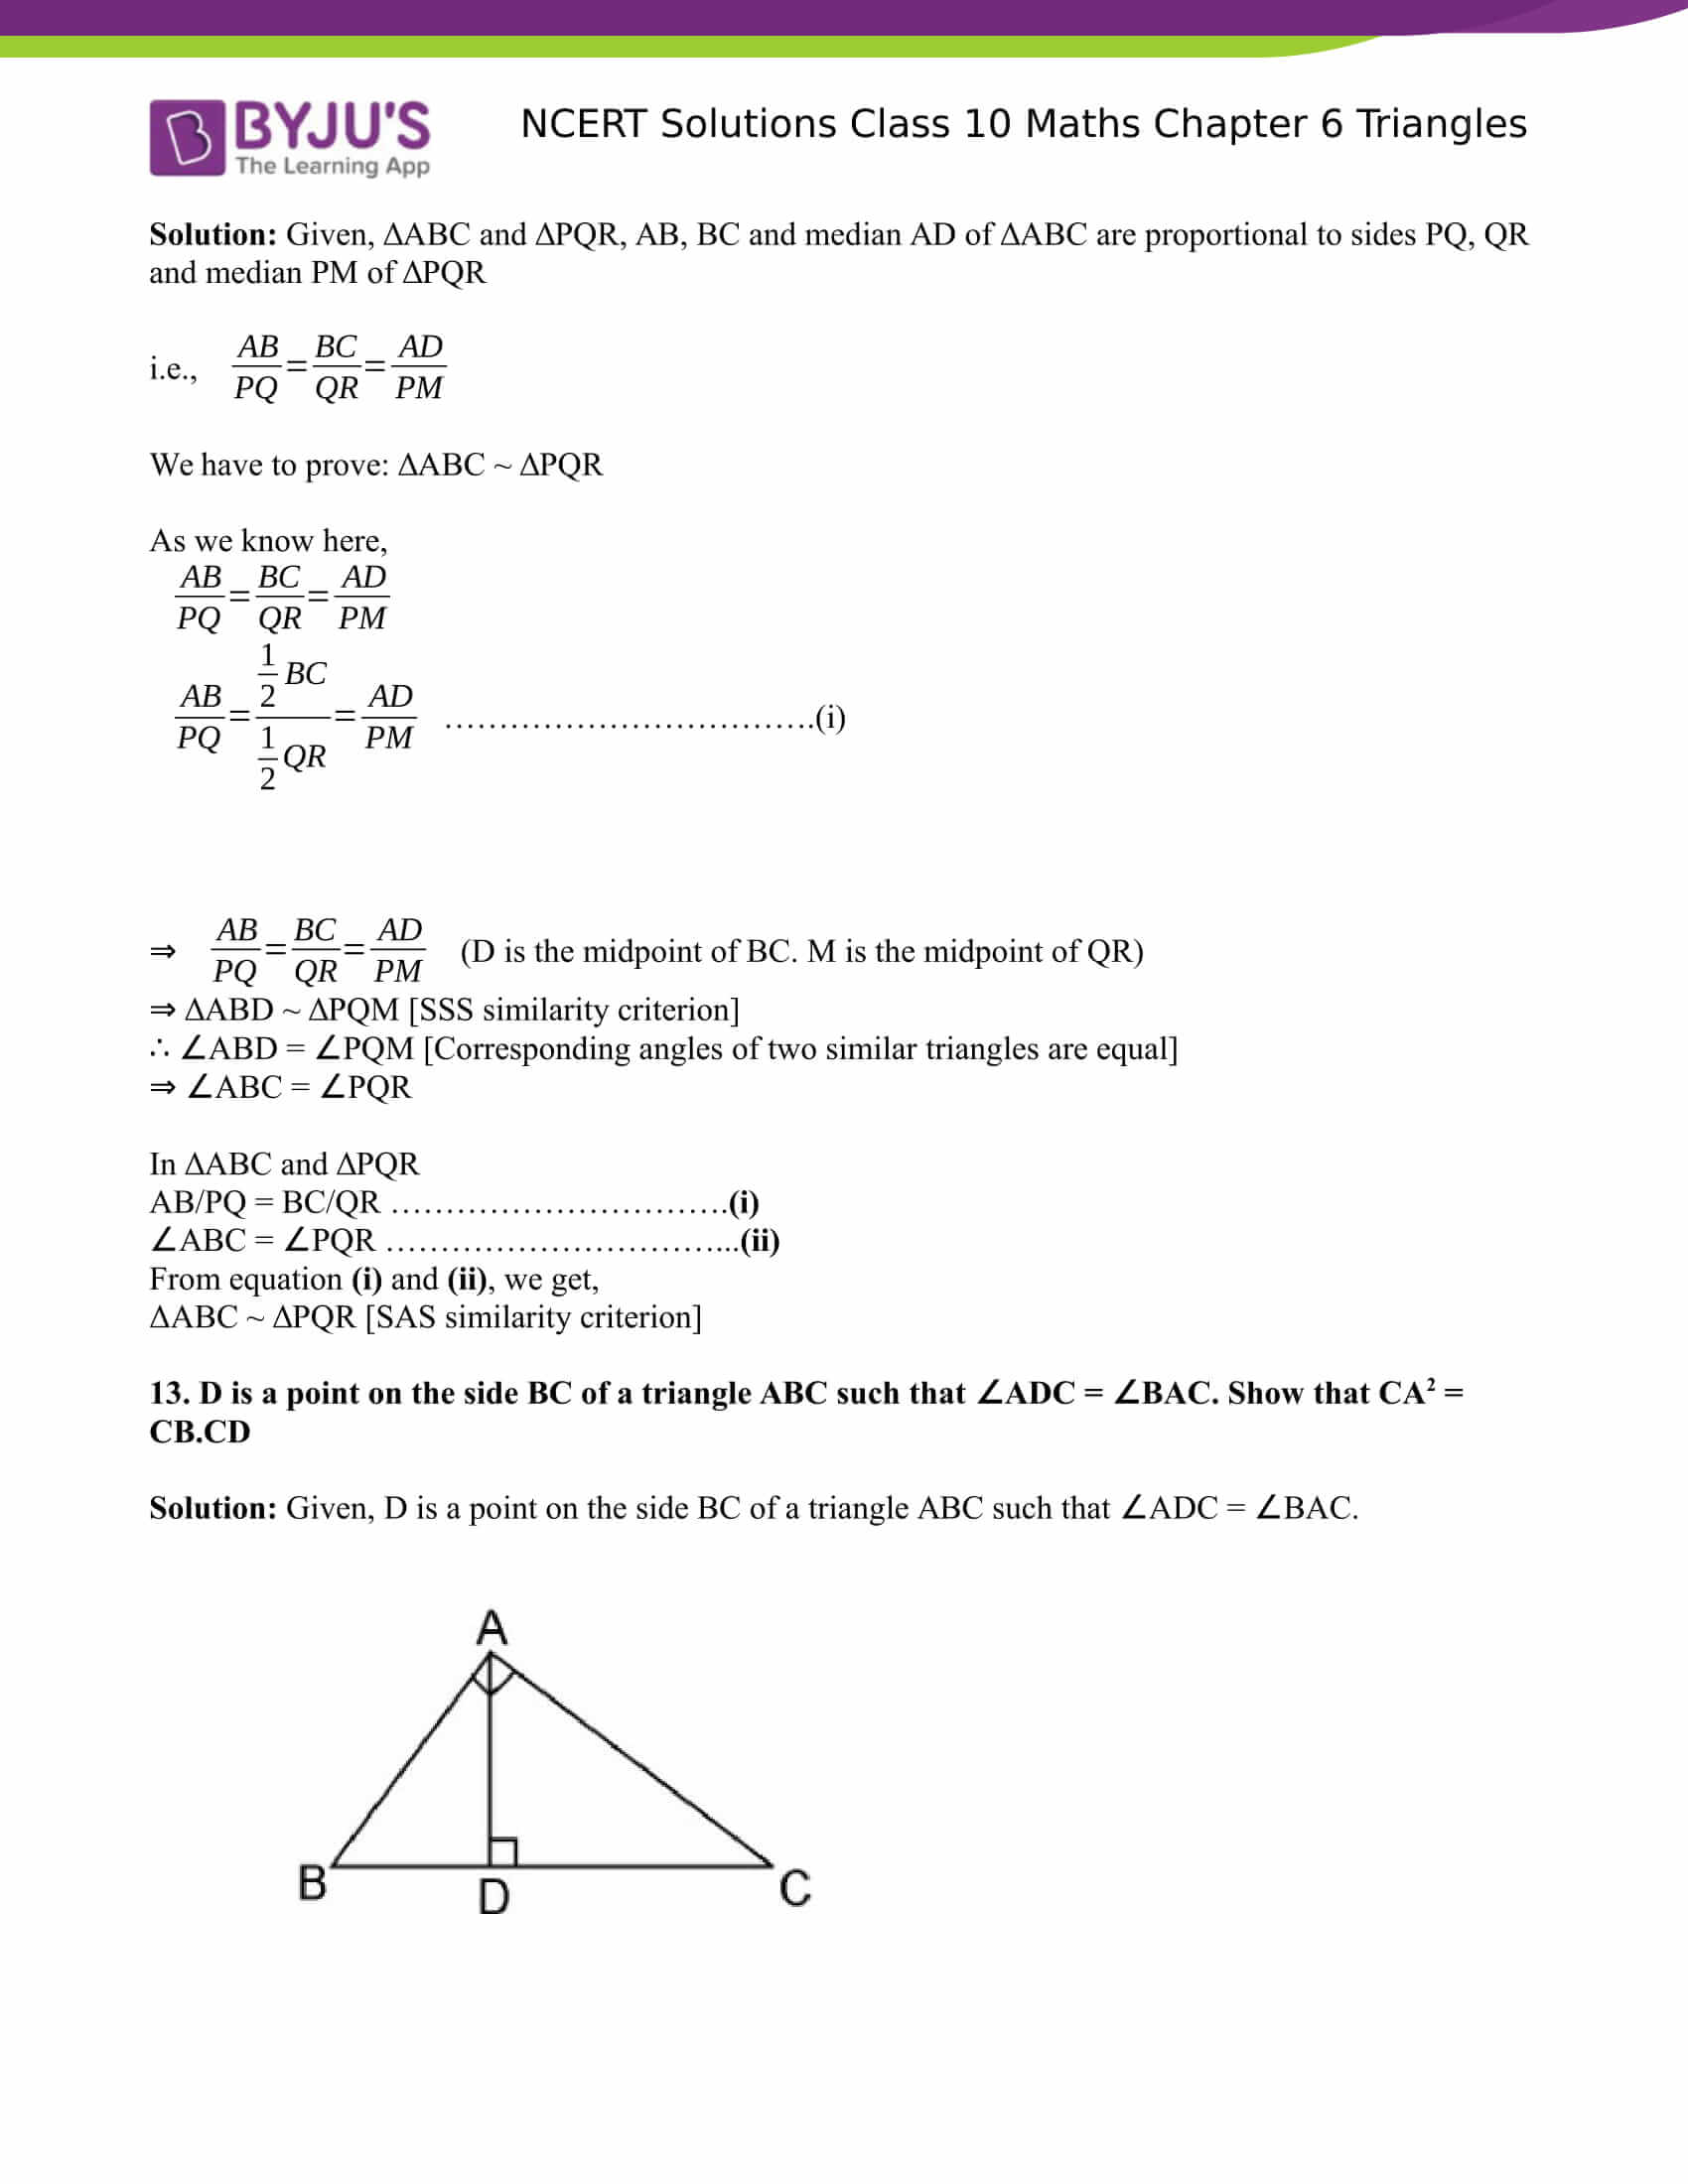 NCERT Solutions for class 10 Maths Chapter 6 Triangles Part 22